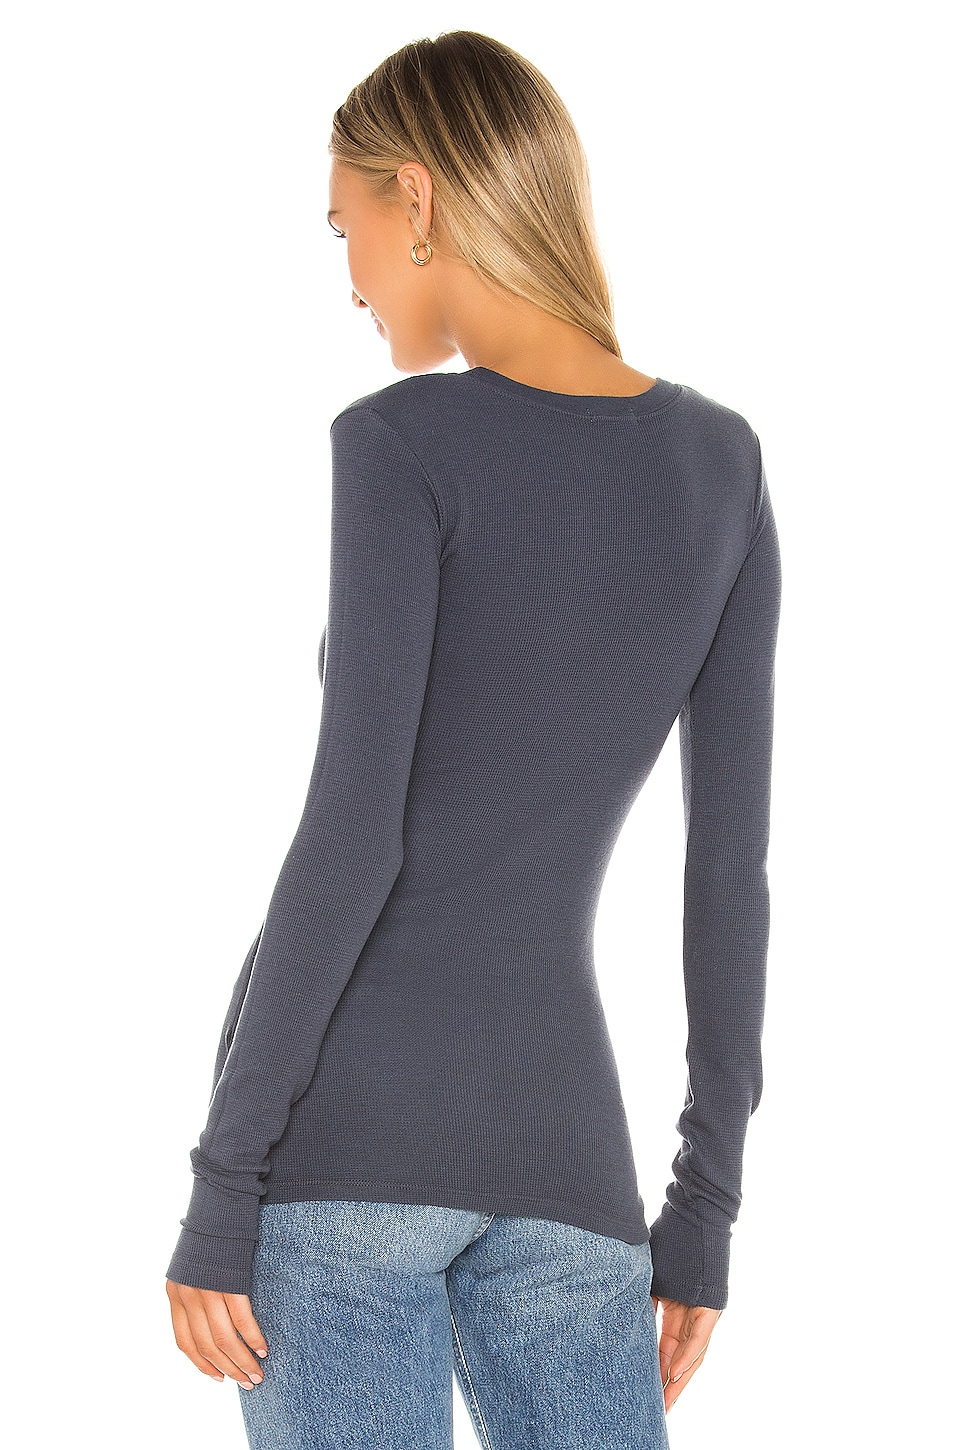 Long Sleeve Thermal Tee, view 3, click to view large image.